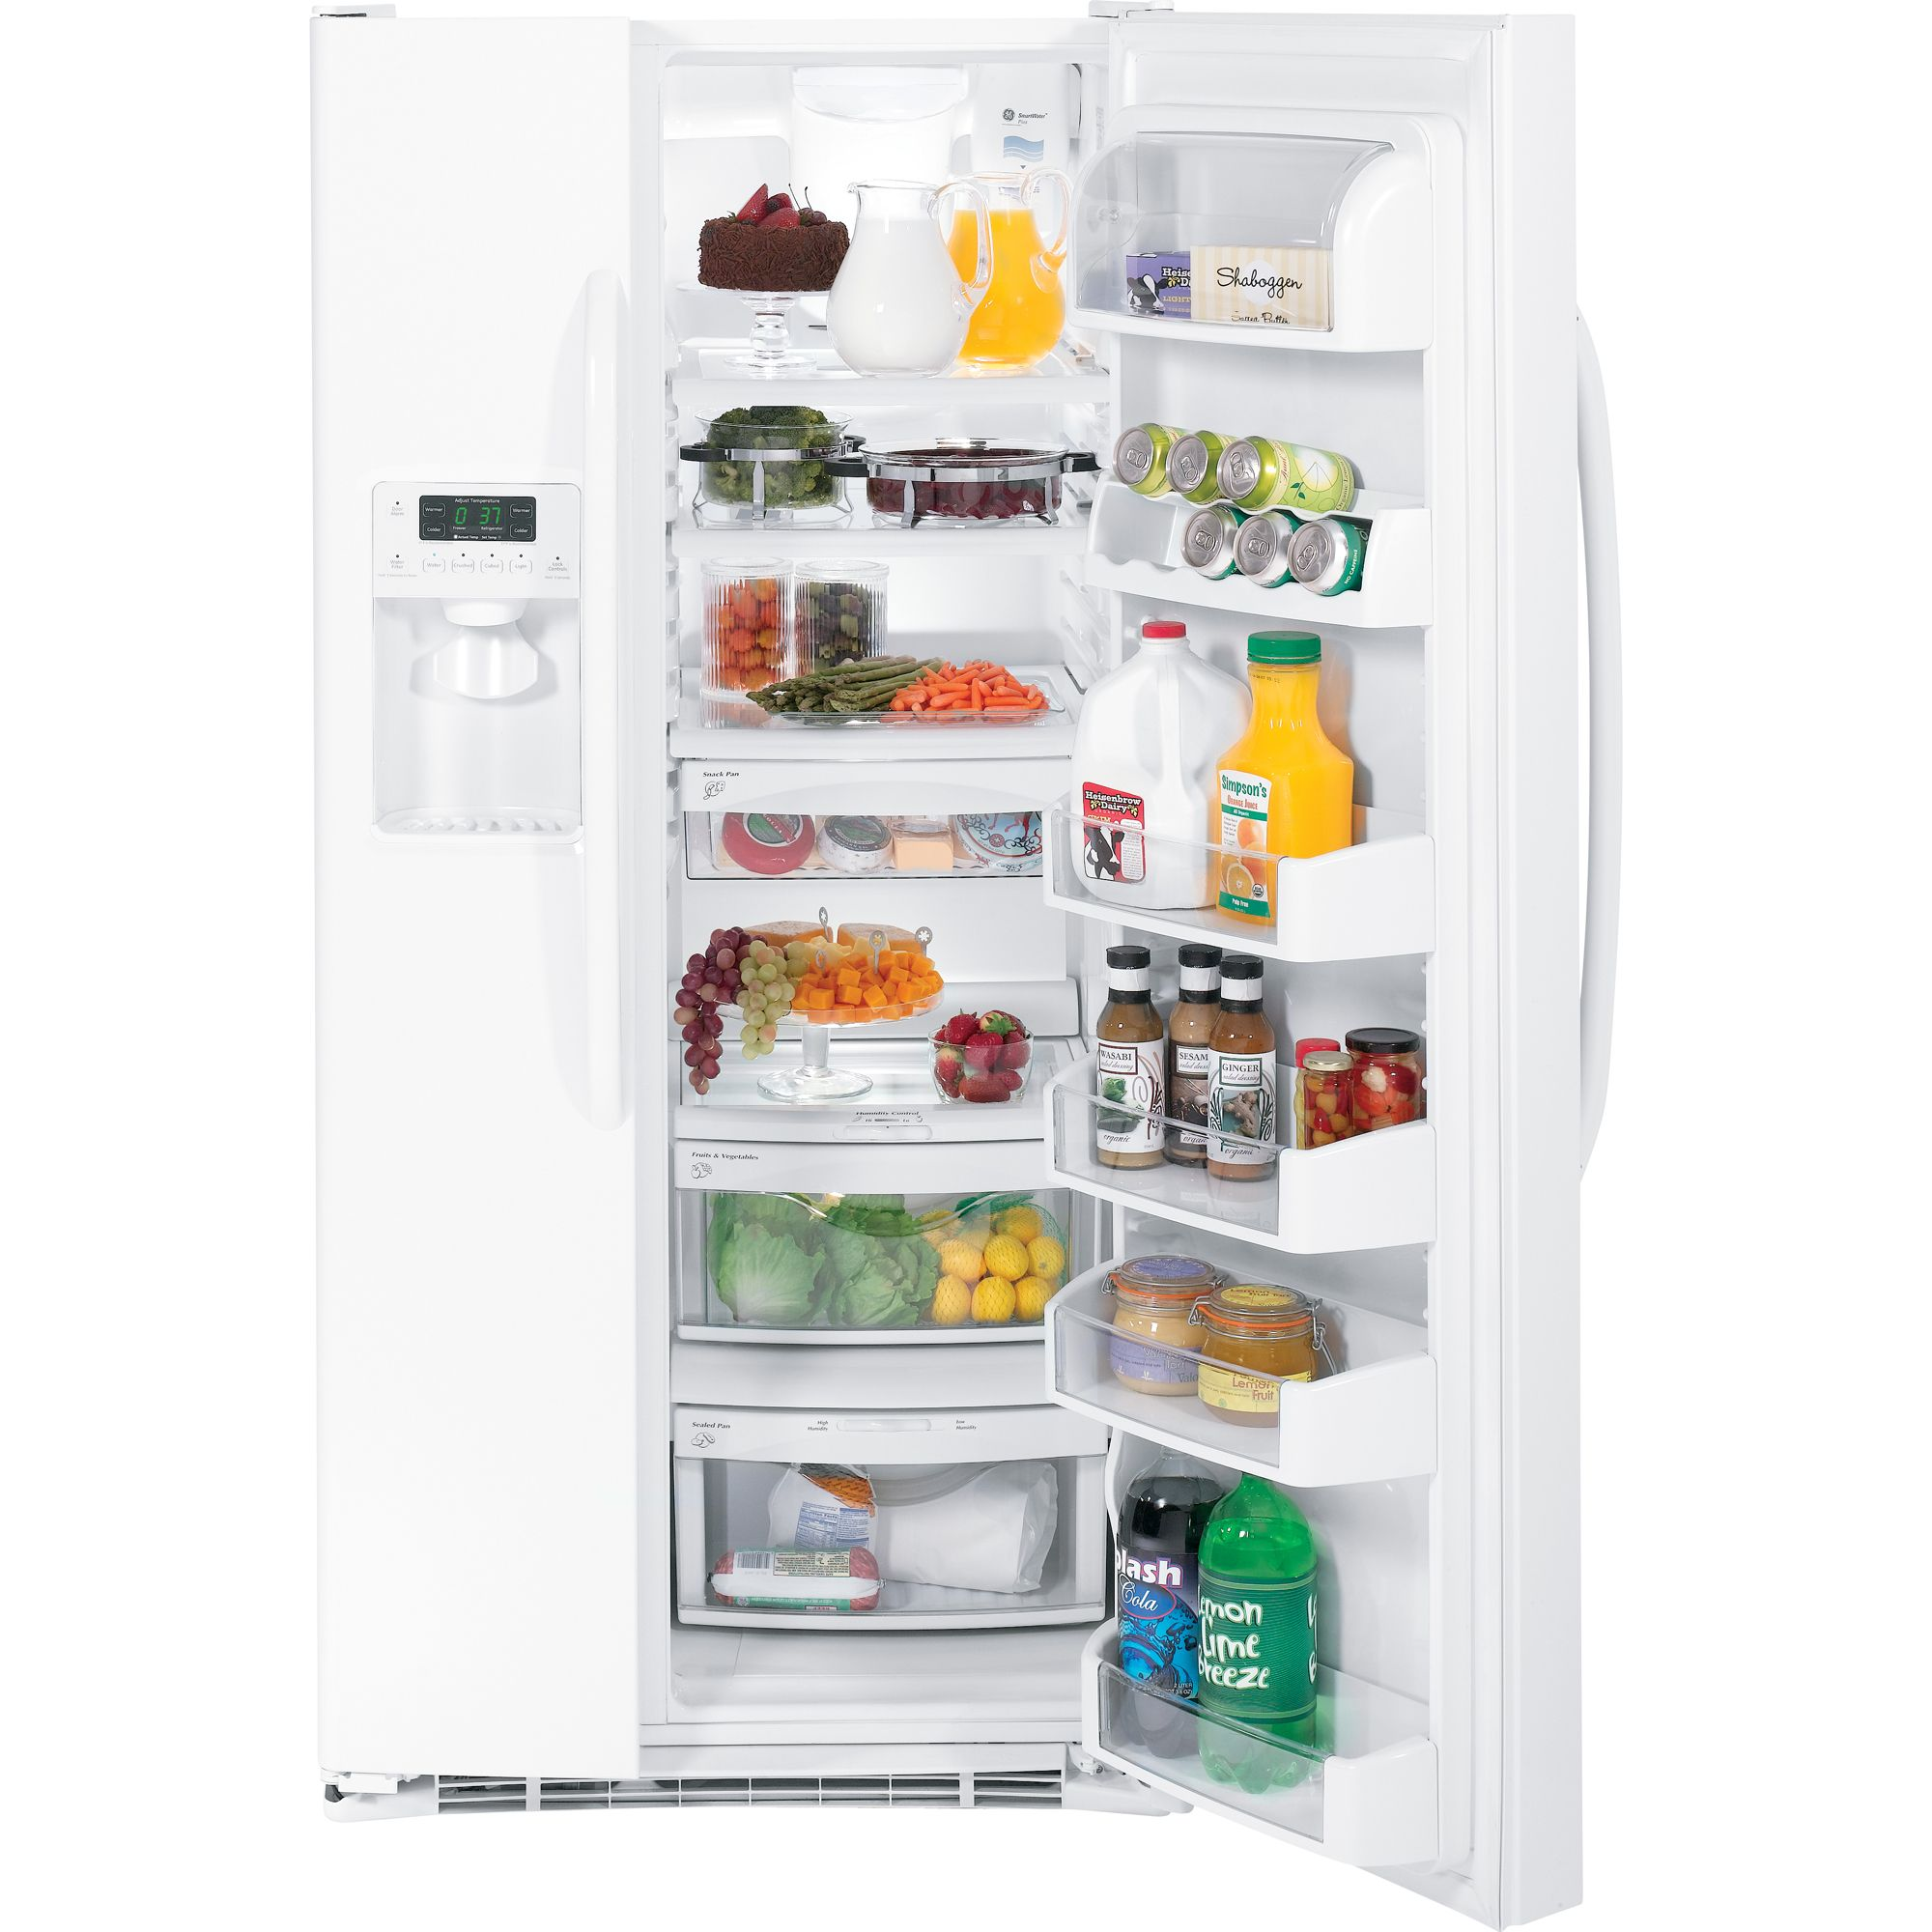 GE 23.1 cu. ft. Side-by-Side Refrigerator